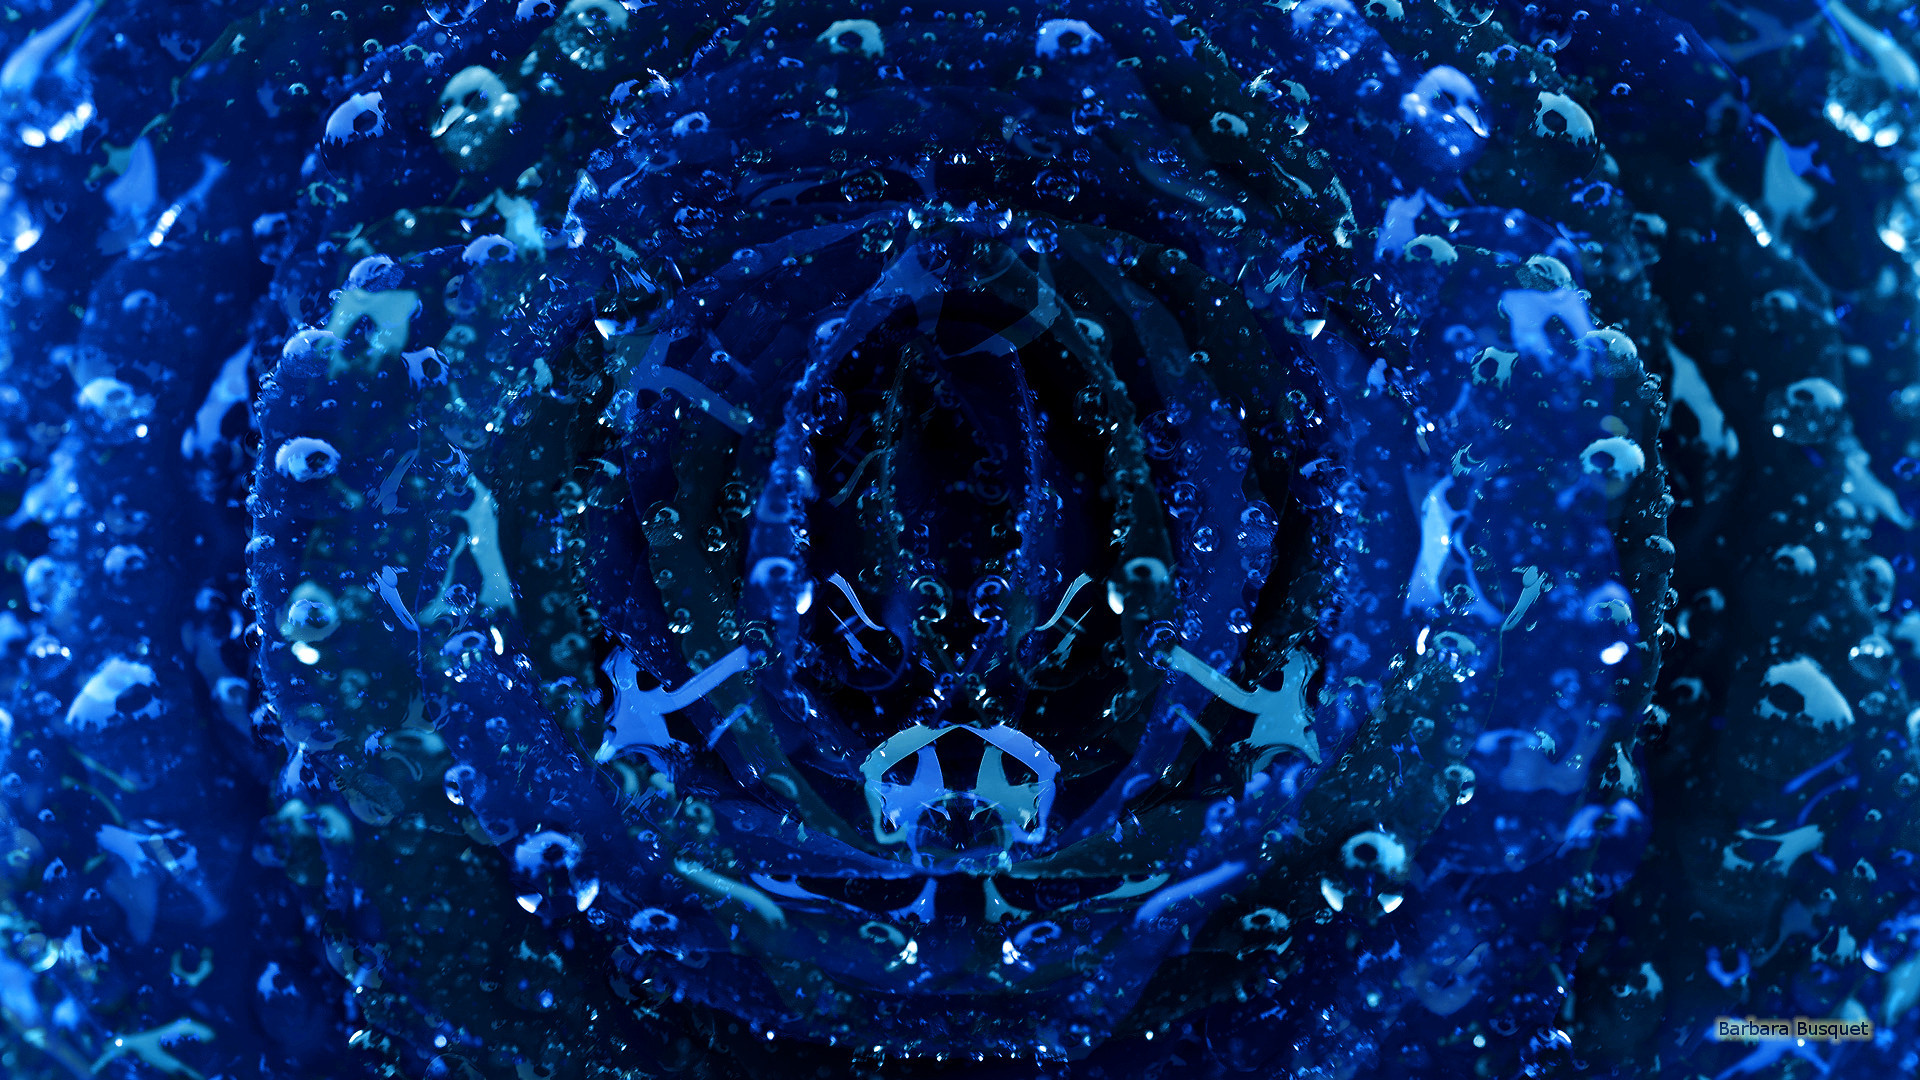 Dark blue wallpaper with water drops